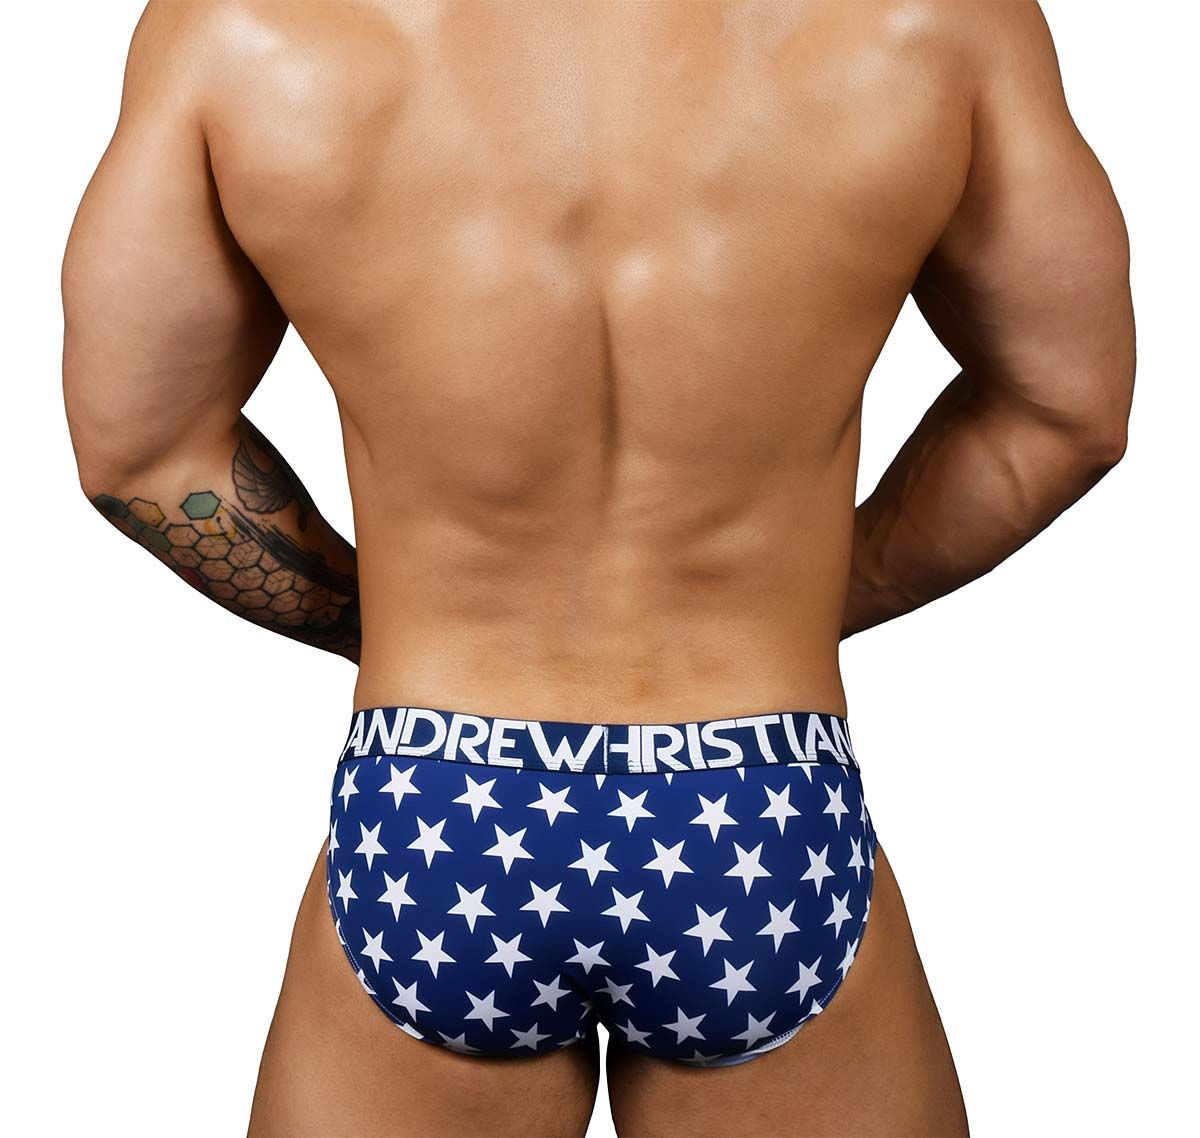 Andrew Christian Slip STAR PRIDE BRIEF with ALMOST NAKED 91111, arcoiris